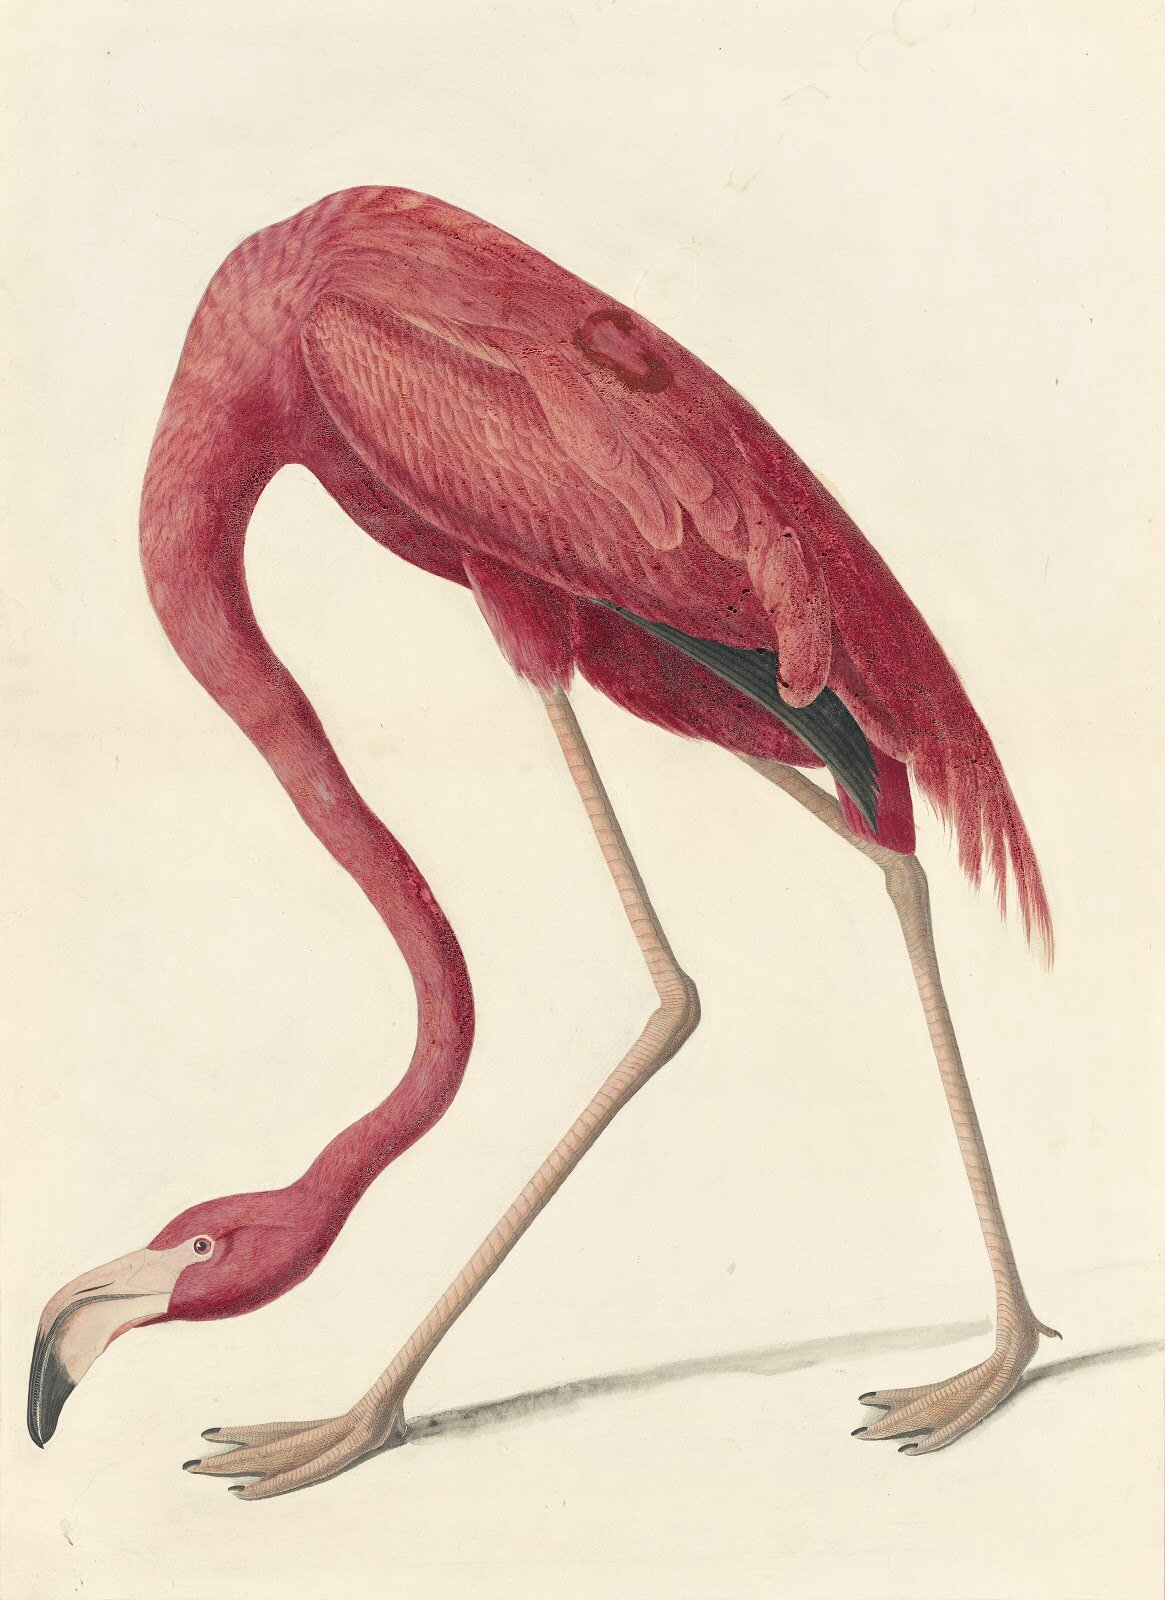 New-York Historical Society presents the swan song of Audubon's masterpiece